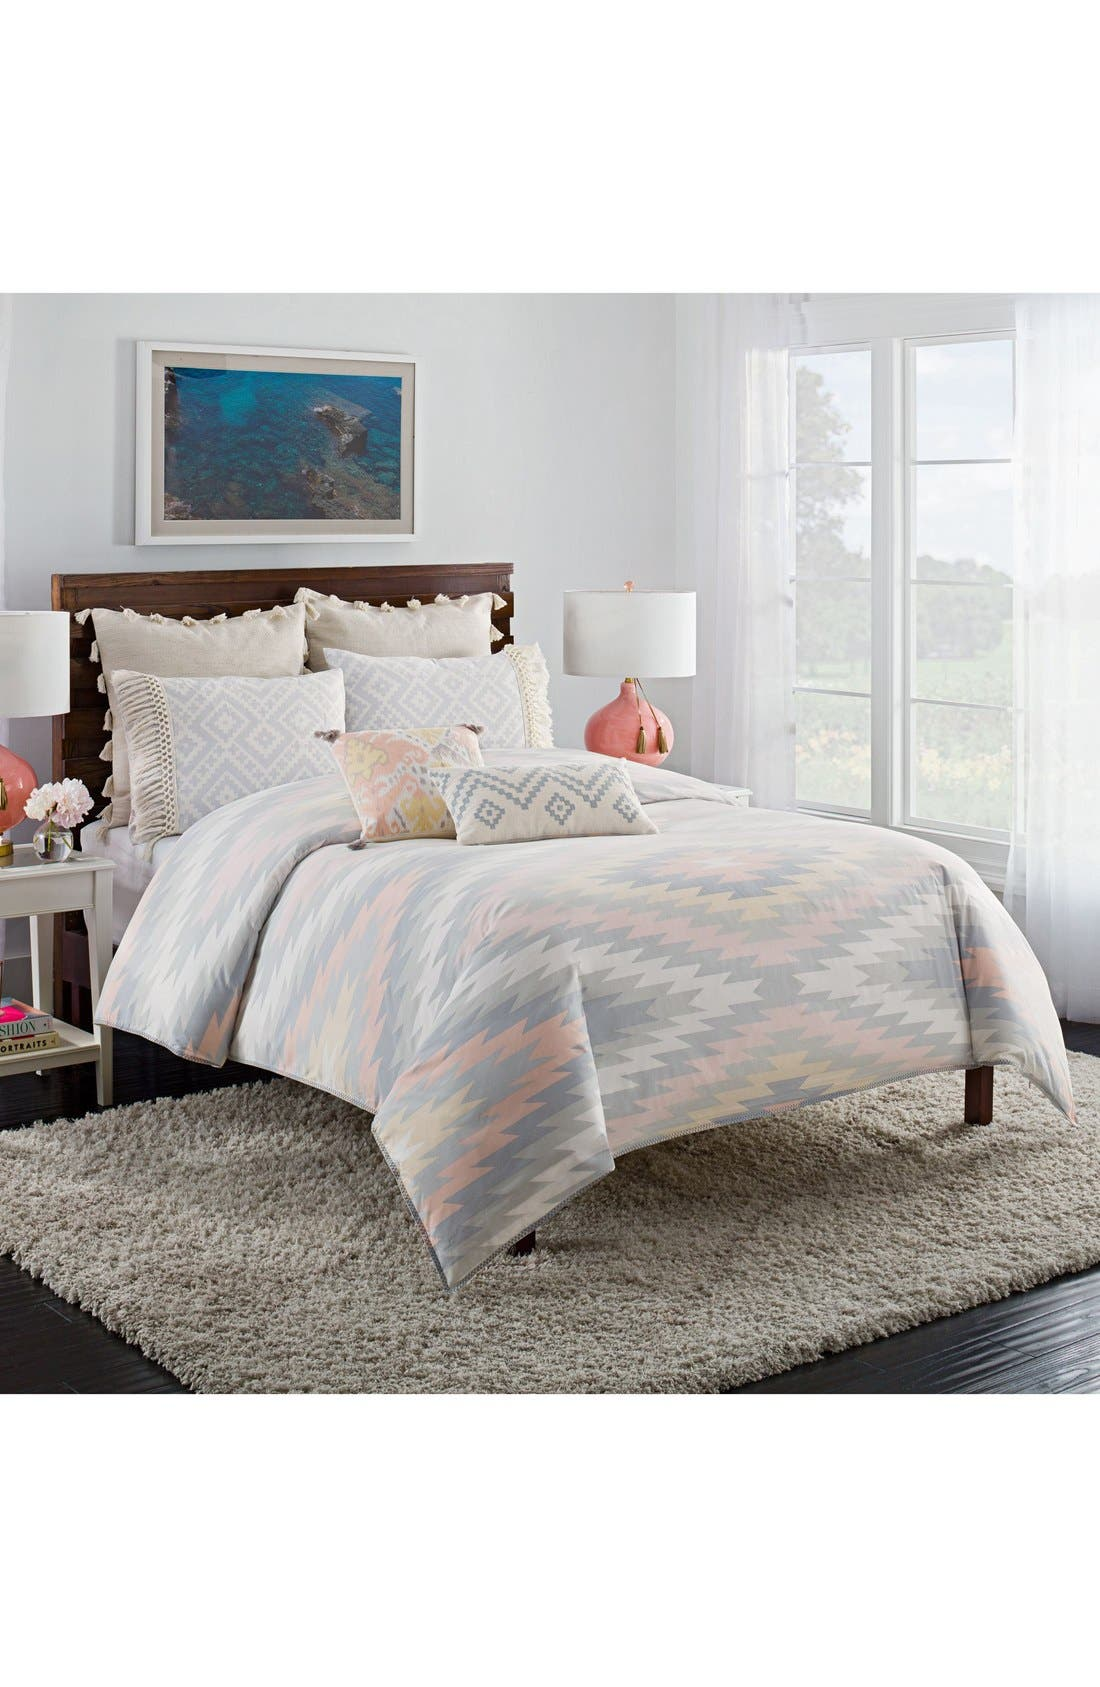 Cupcakes And Cashmere Kilim Duvet Cover Nordstrom